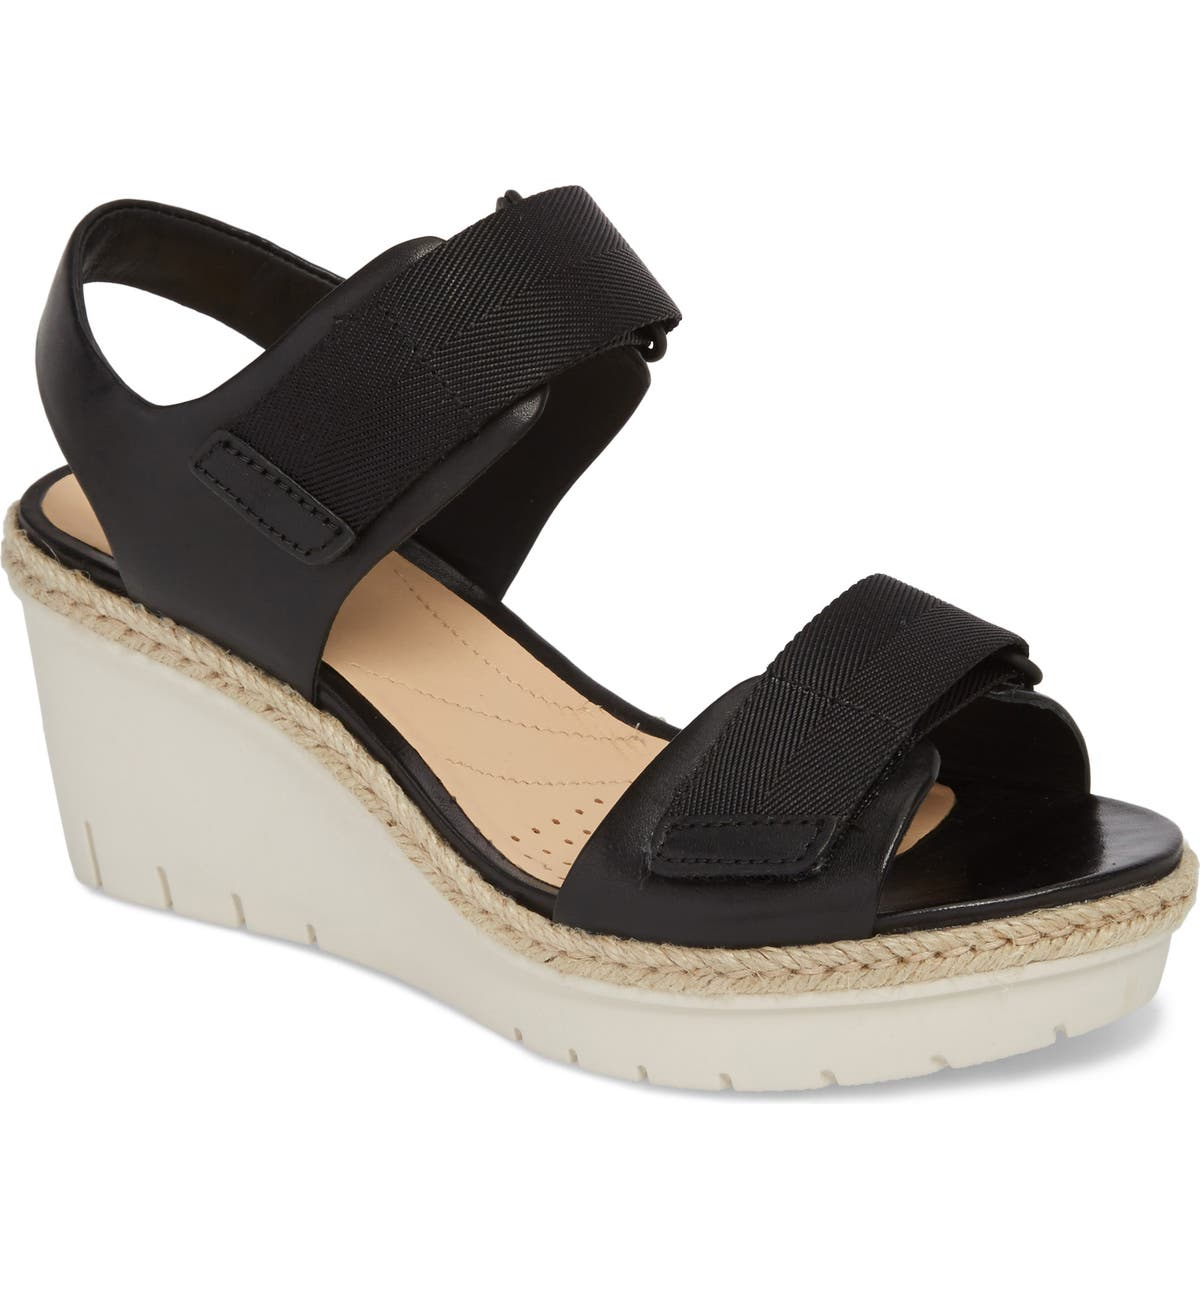 597647c7a7a Palm Shine Wedge Sandal